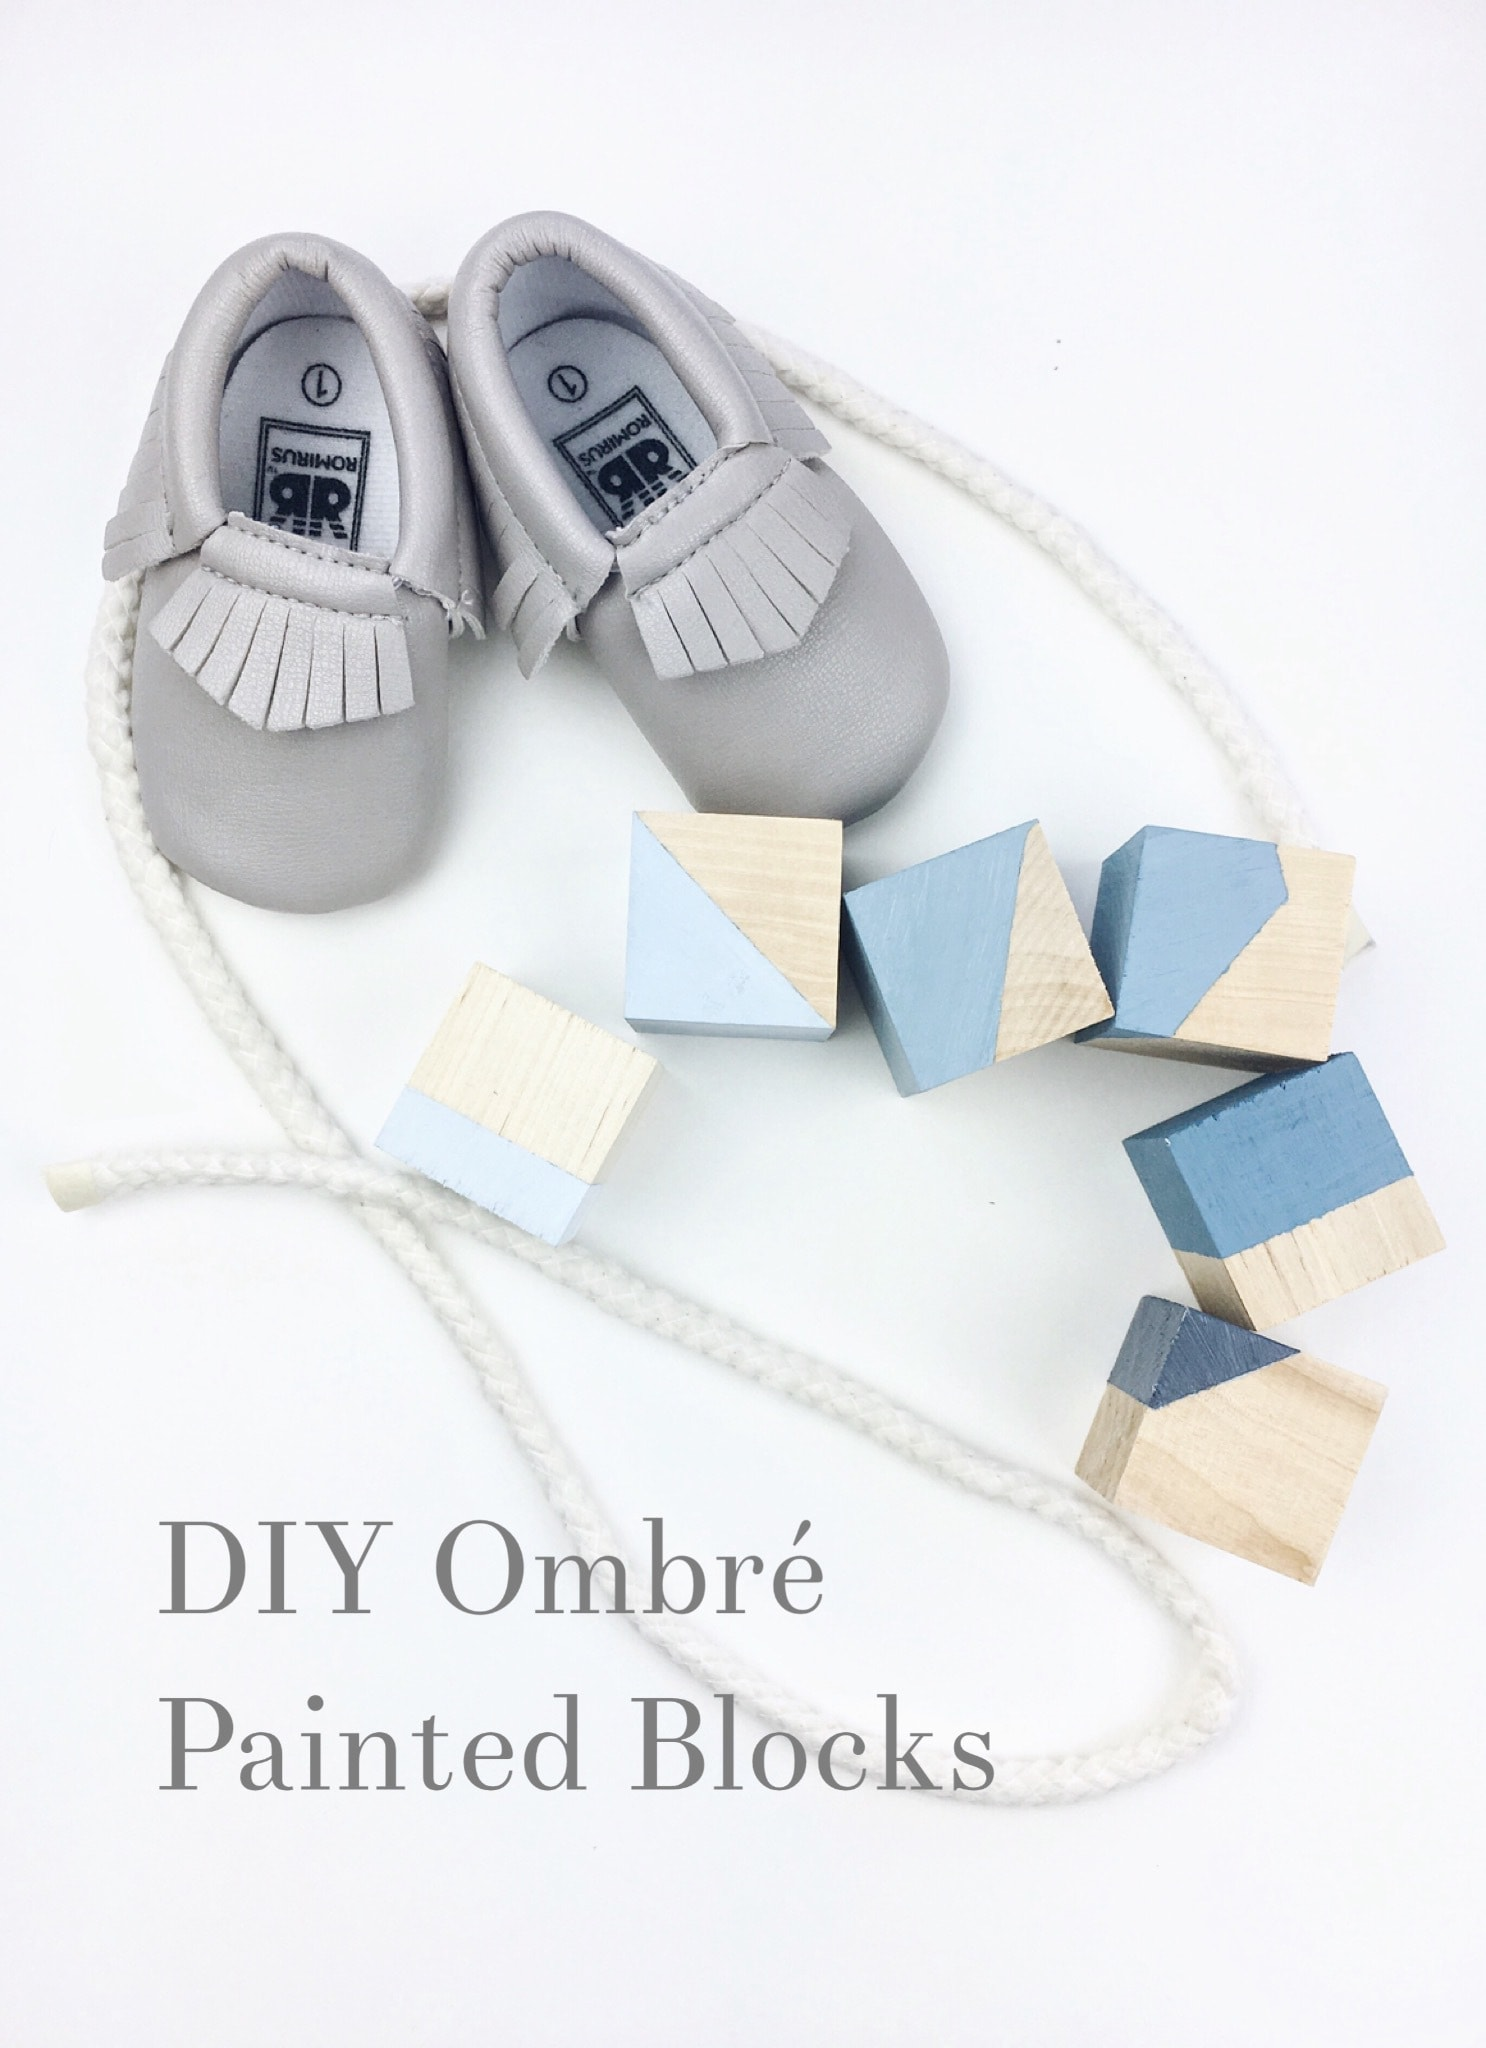 DIY Ombré Painted Blocks